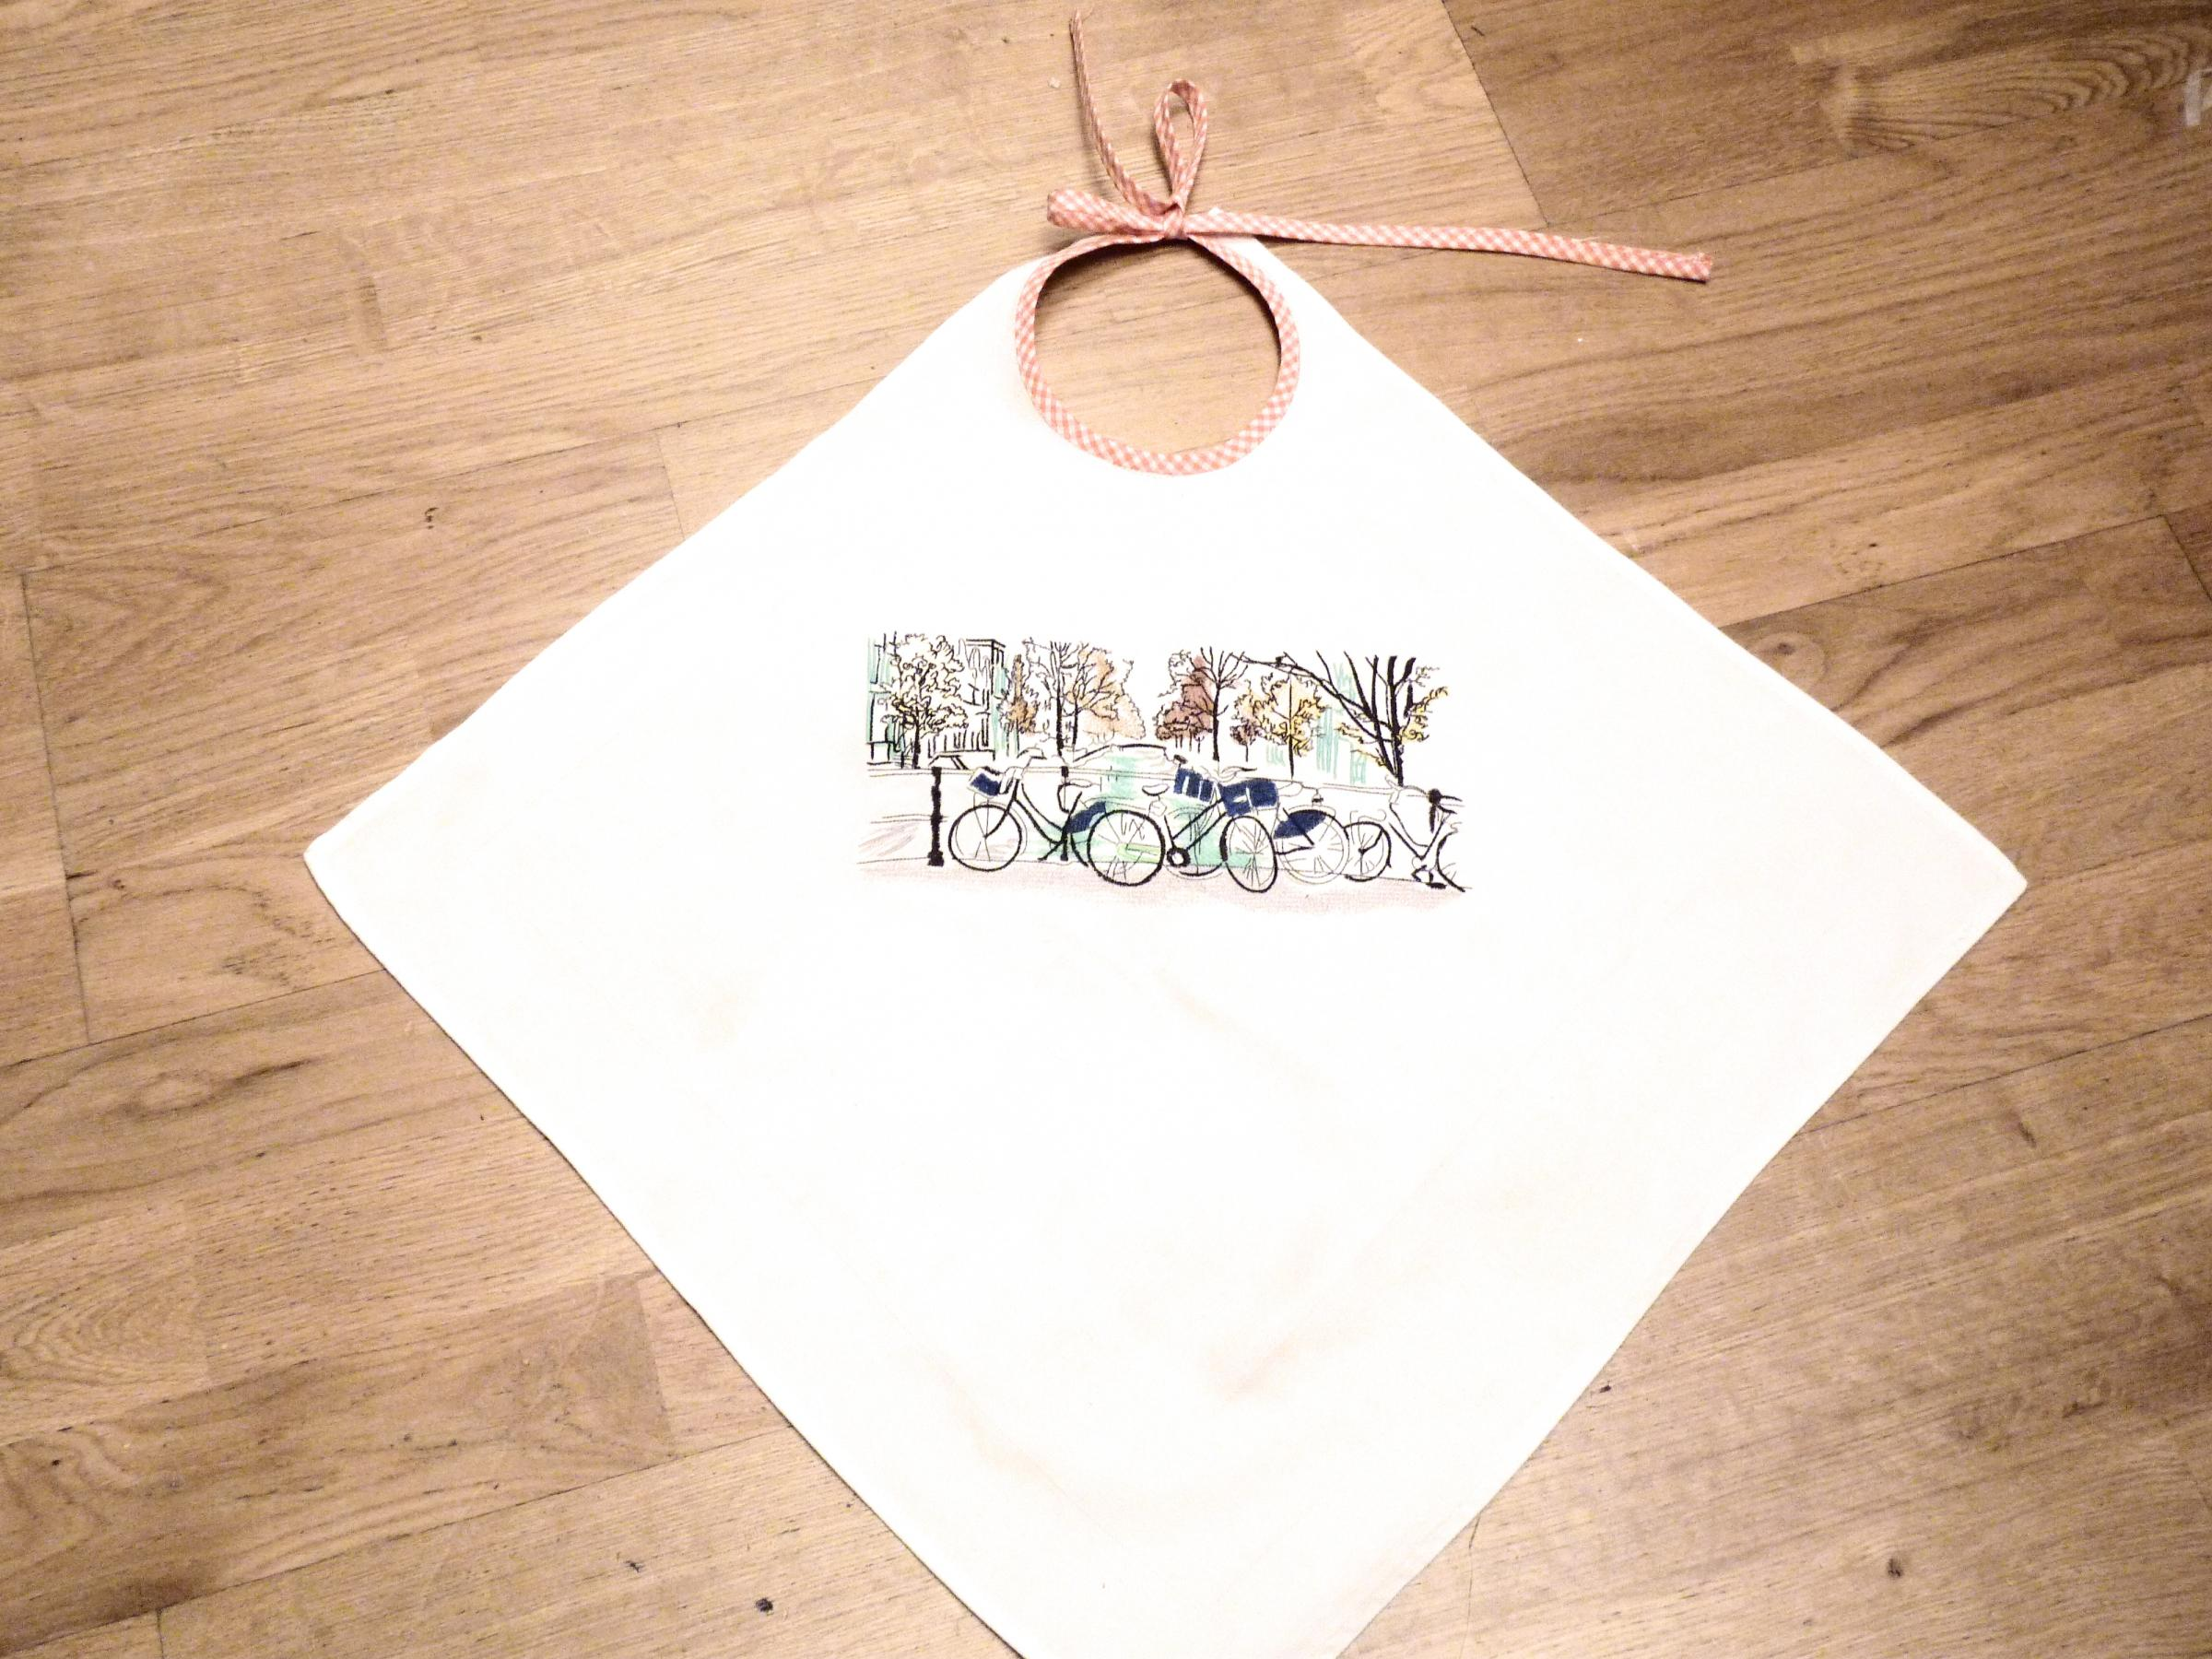 Embroidered bib with Bicycles in city design